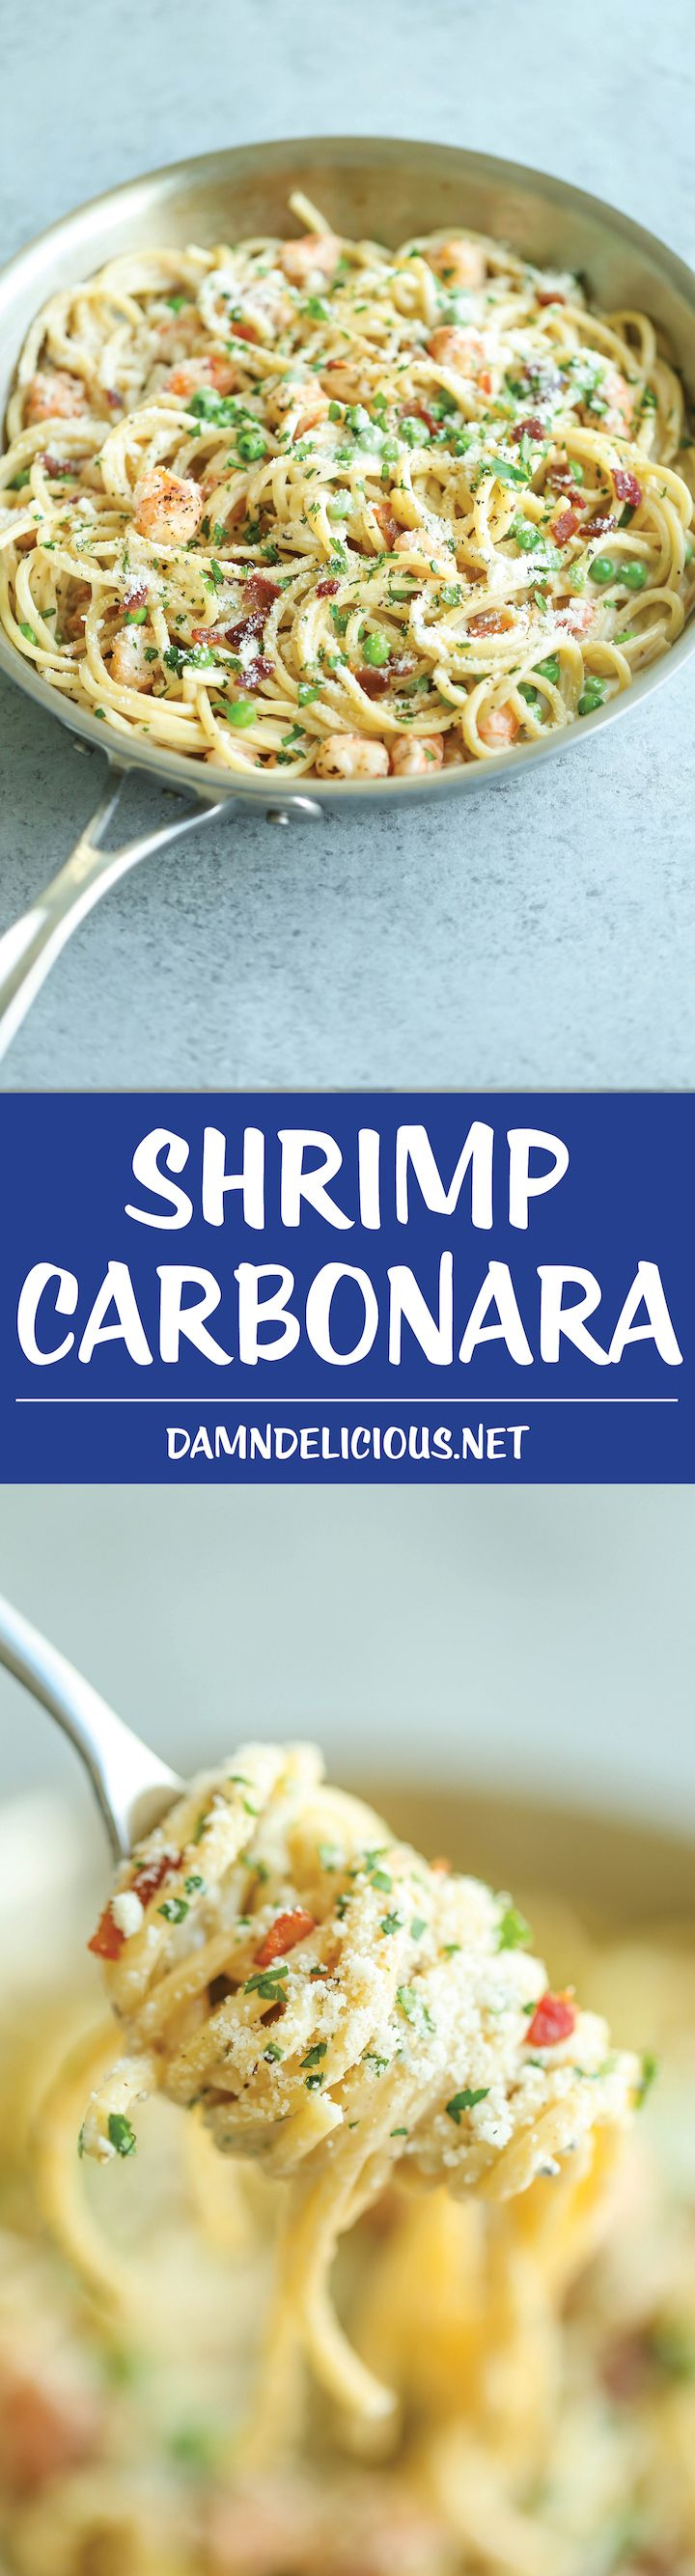 Photo of Shrimp Carbonara – Damn Delicious